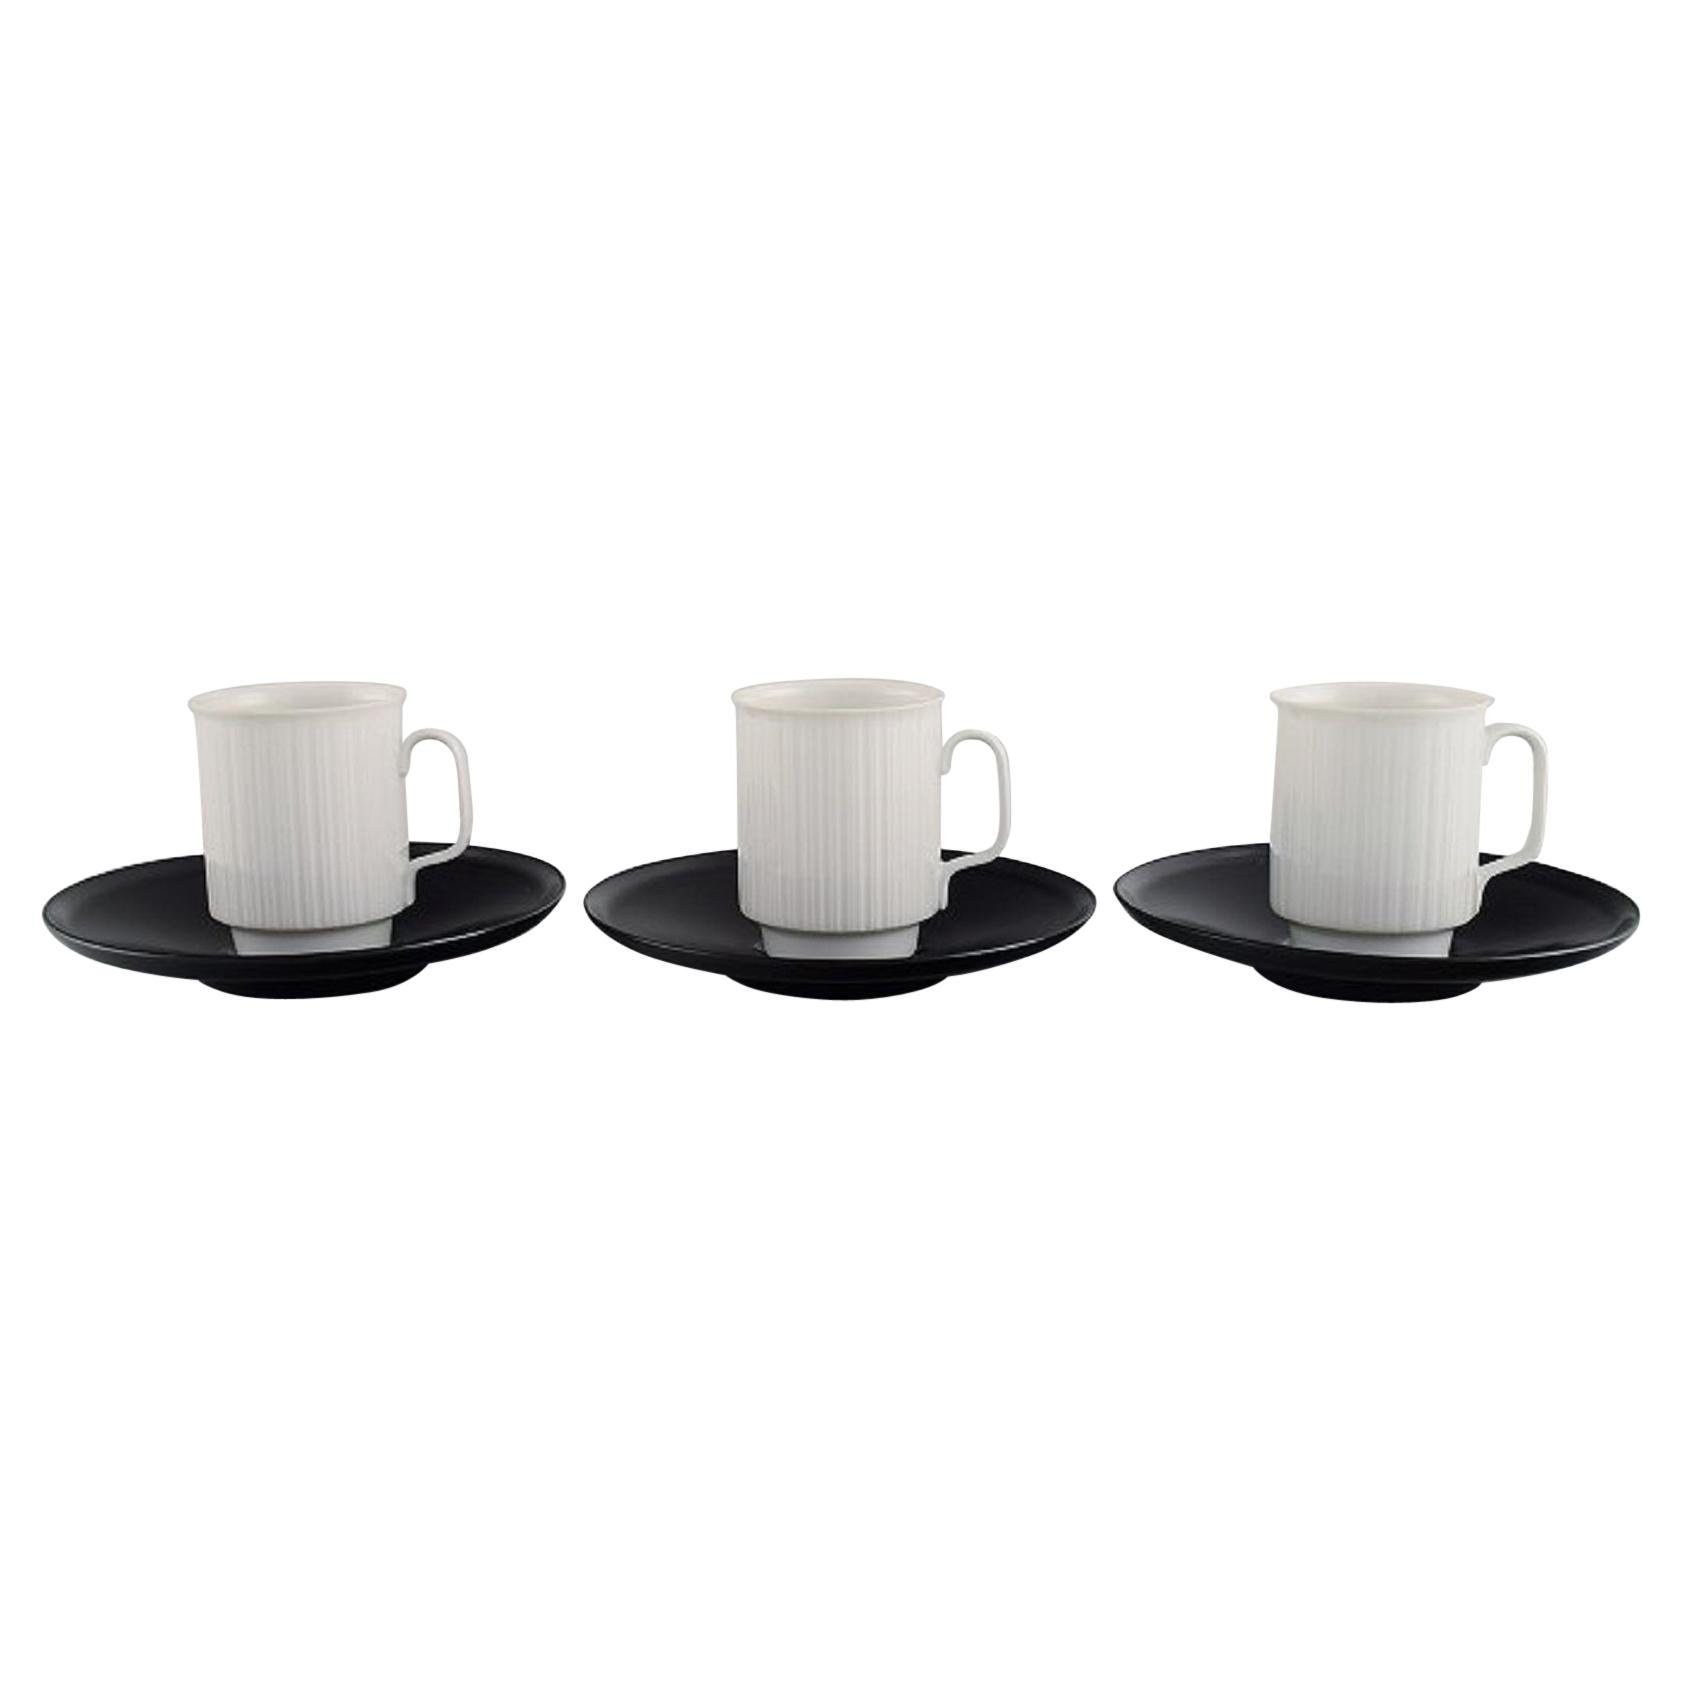 Tapio Wirkkala for Rosenthal, Three Porcelain Noire Mocha Cups with Saucers